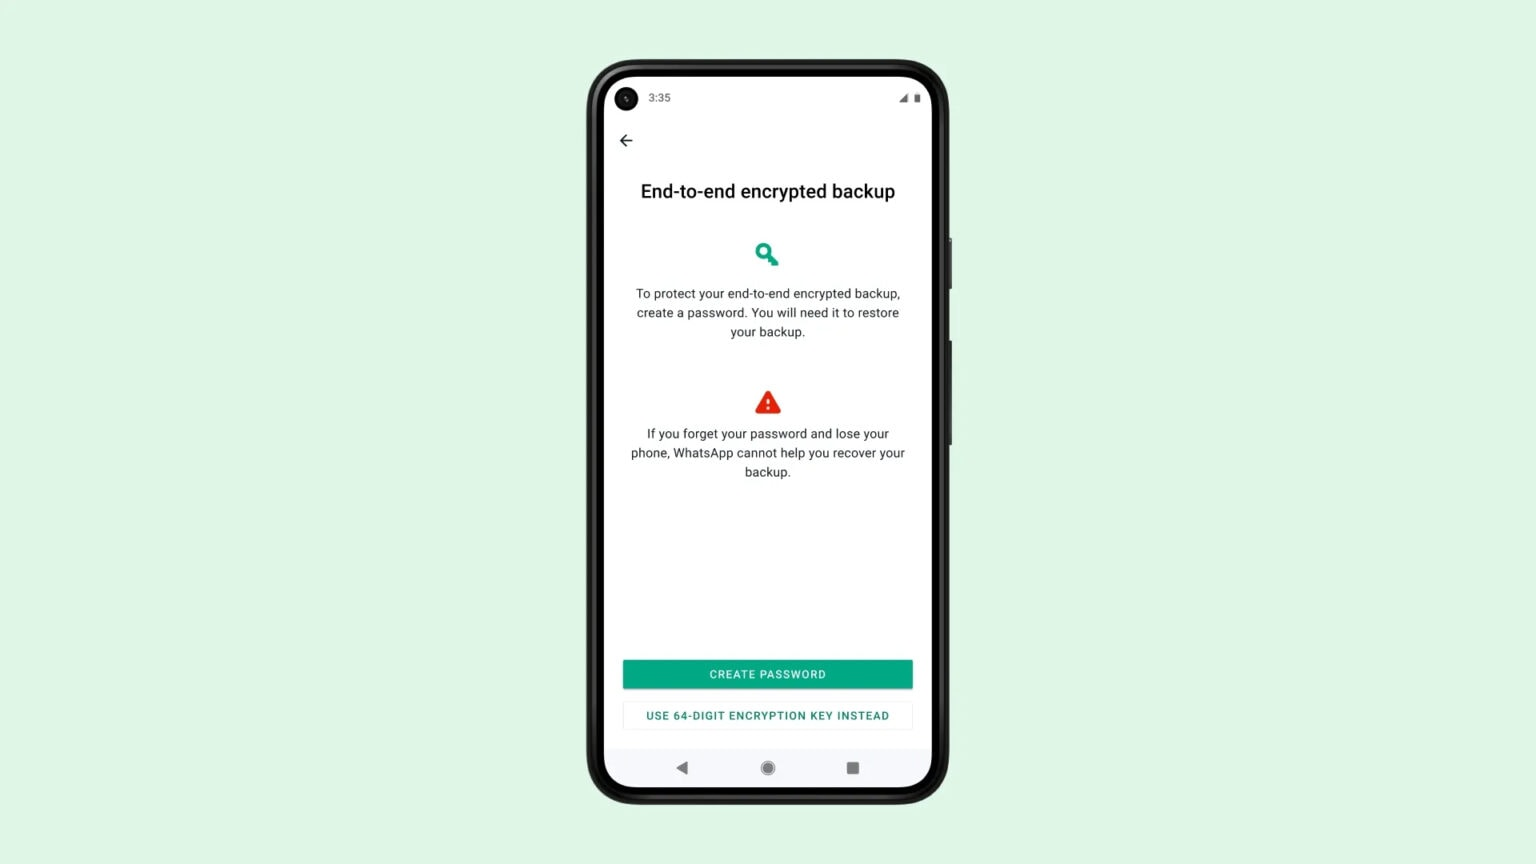 WhatsApp encrypted chat backup